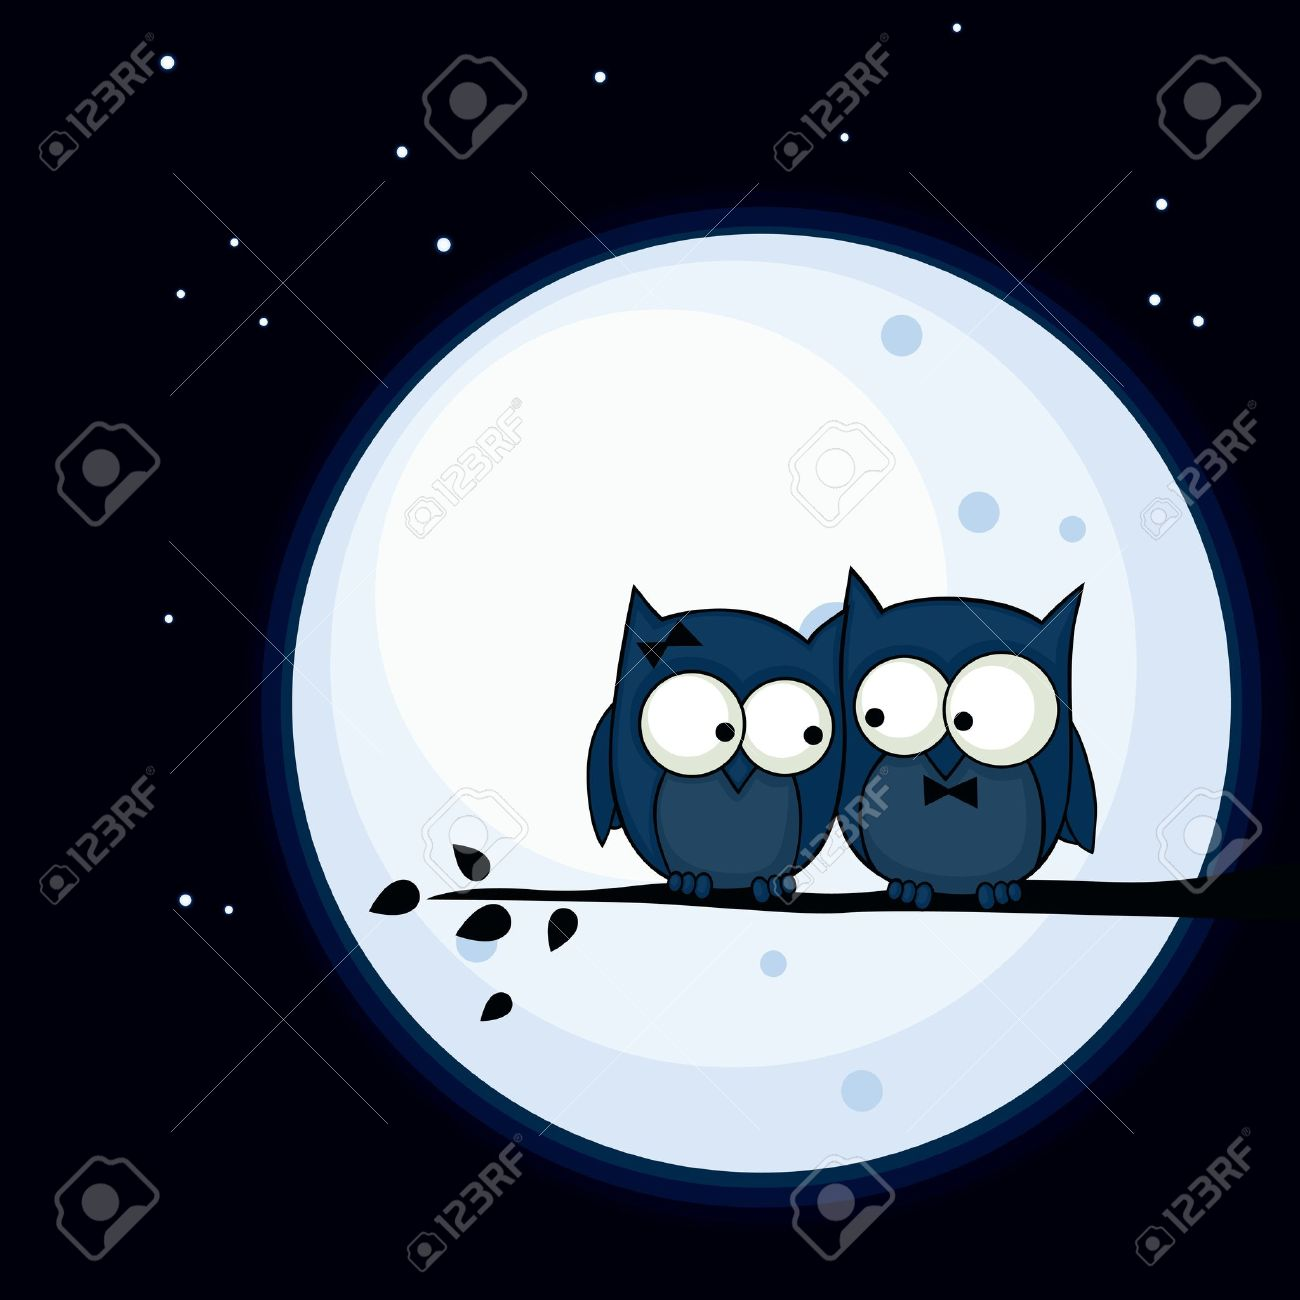 Valentine's Day card with cute owl couple sitting on a branch, with the moon in the background Stock Vector - 17481595